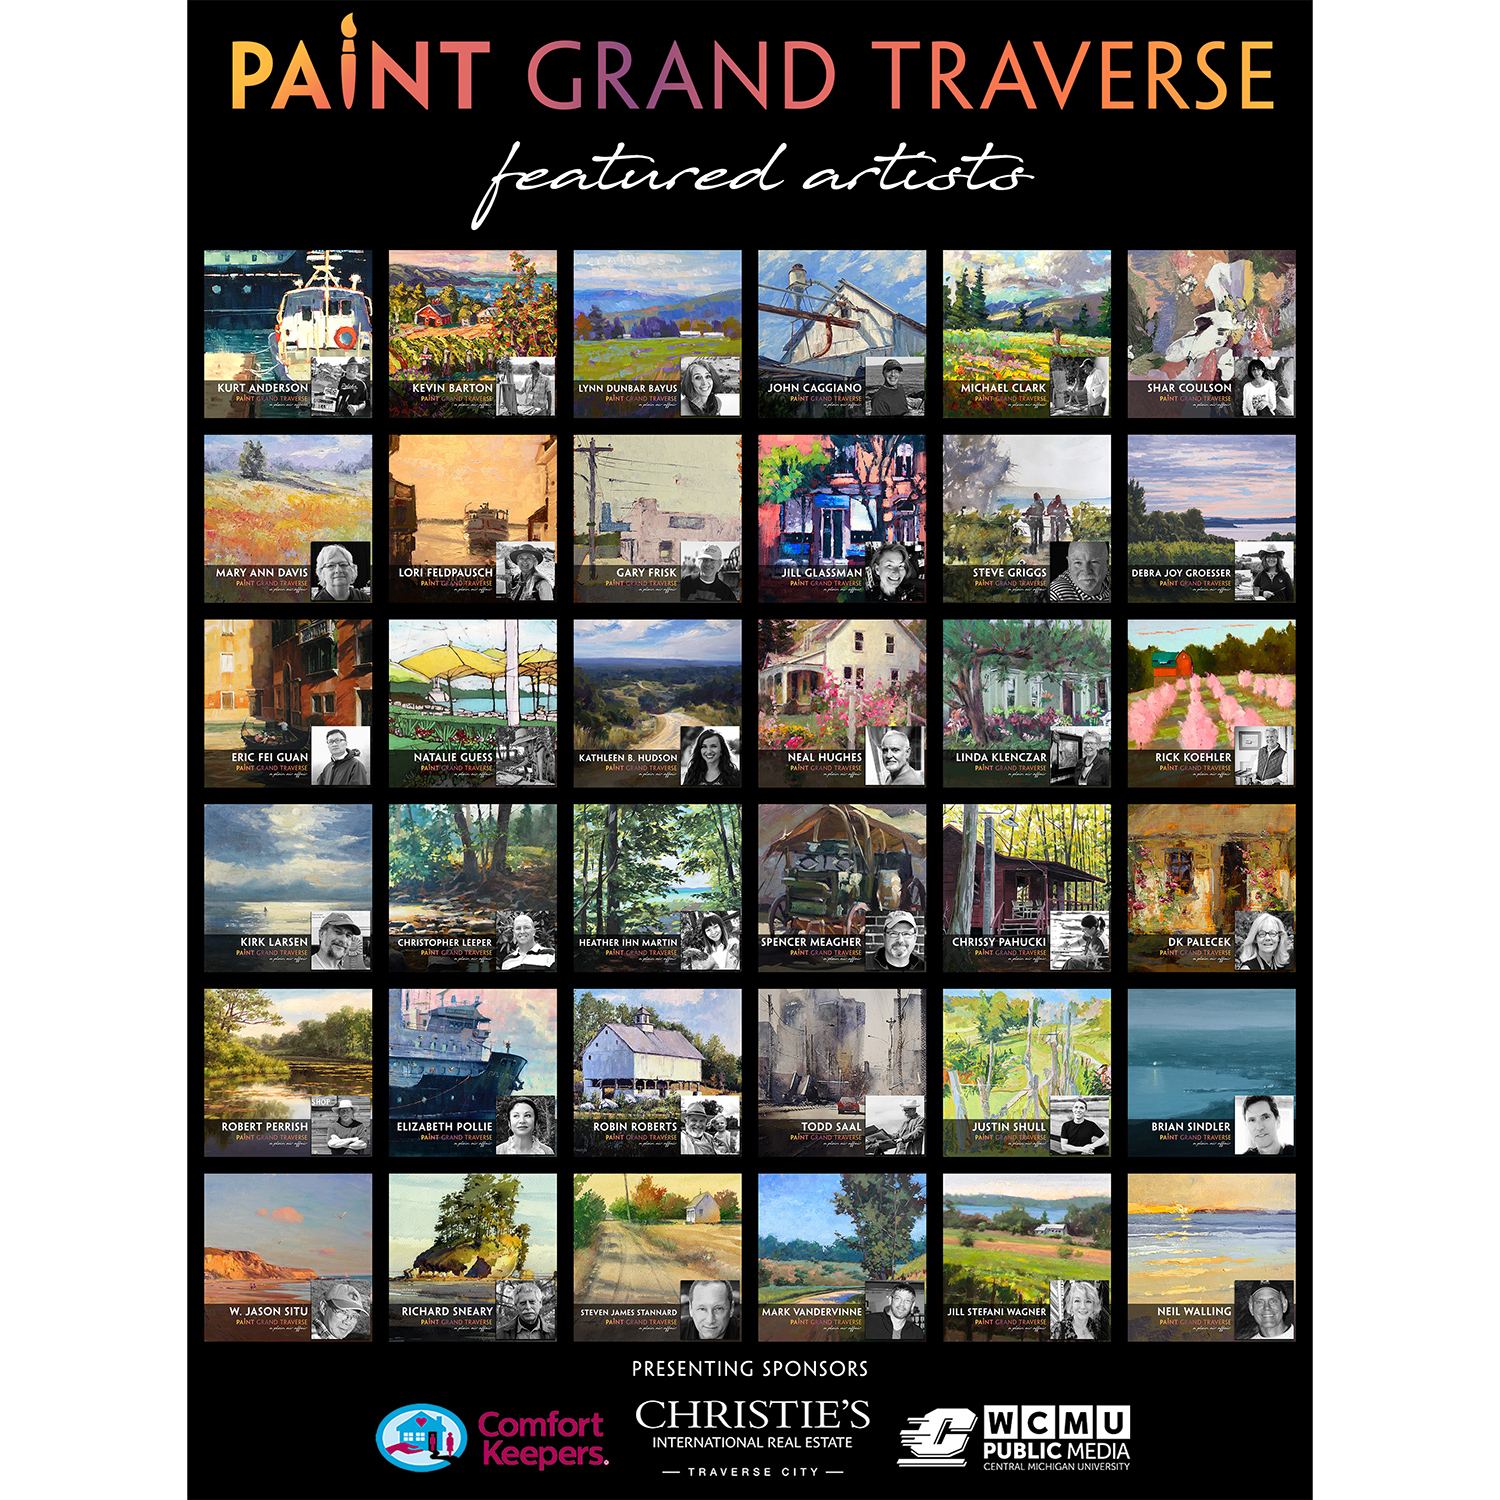 Paint Grand Traverse 2020 featured artists